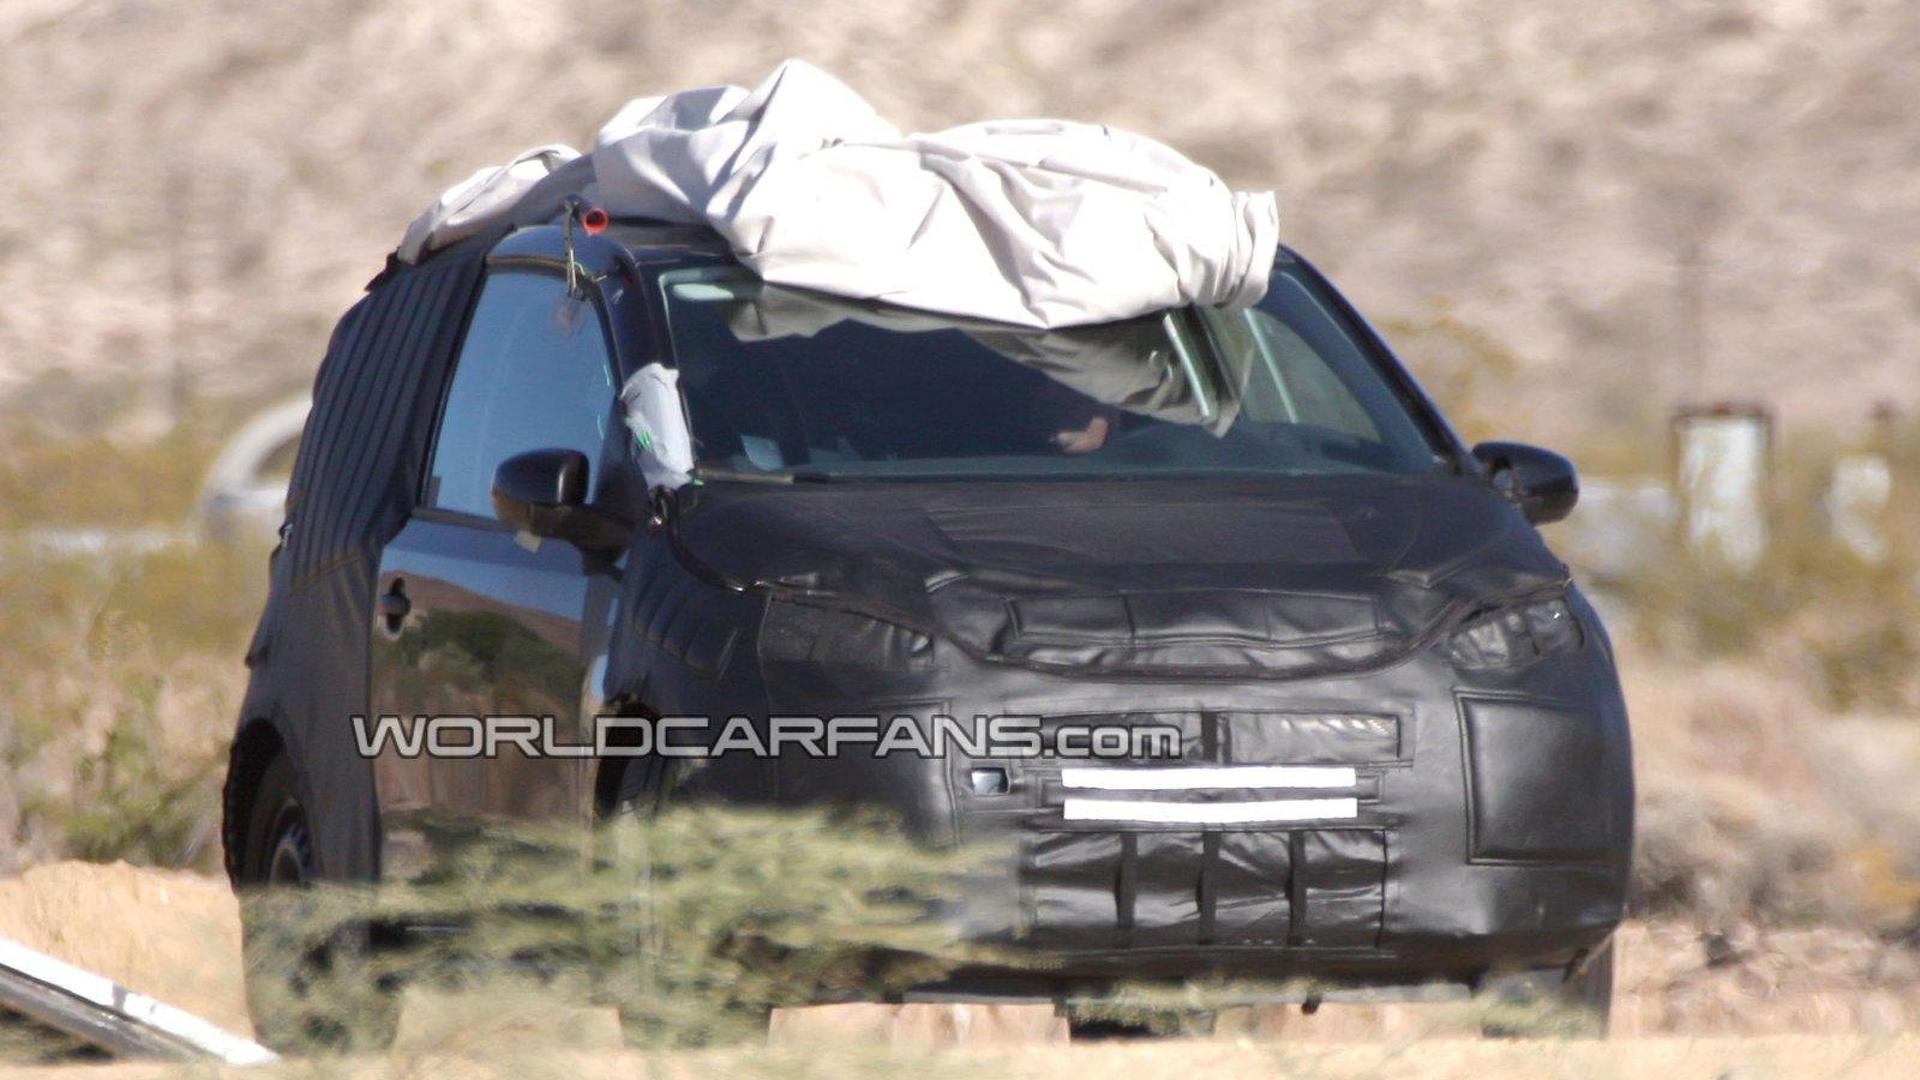 [UPDATED PHOTOS] 2012 Volkswagen Lupo / Up first full body prototype spy photos